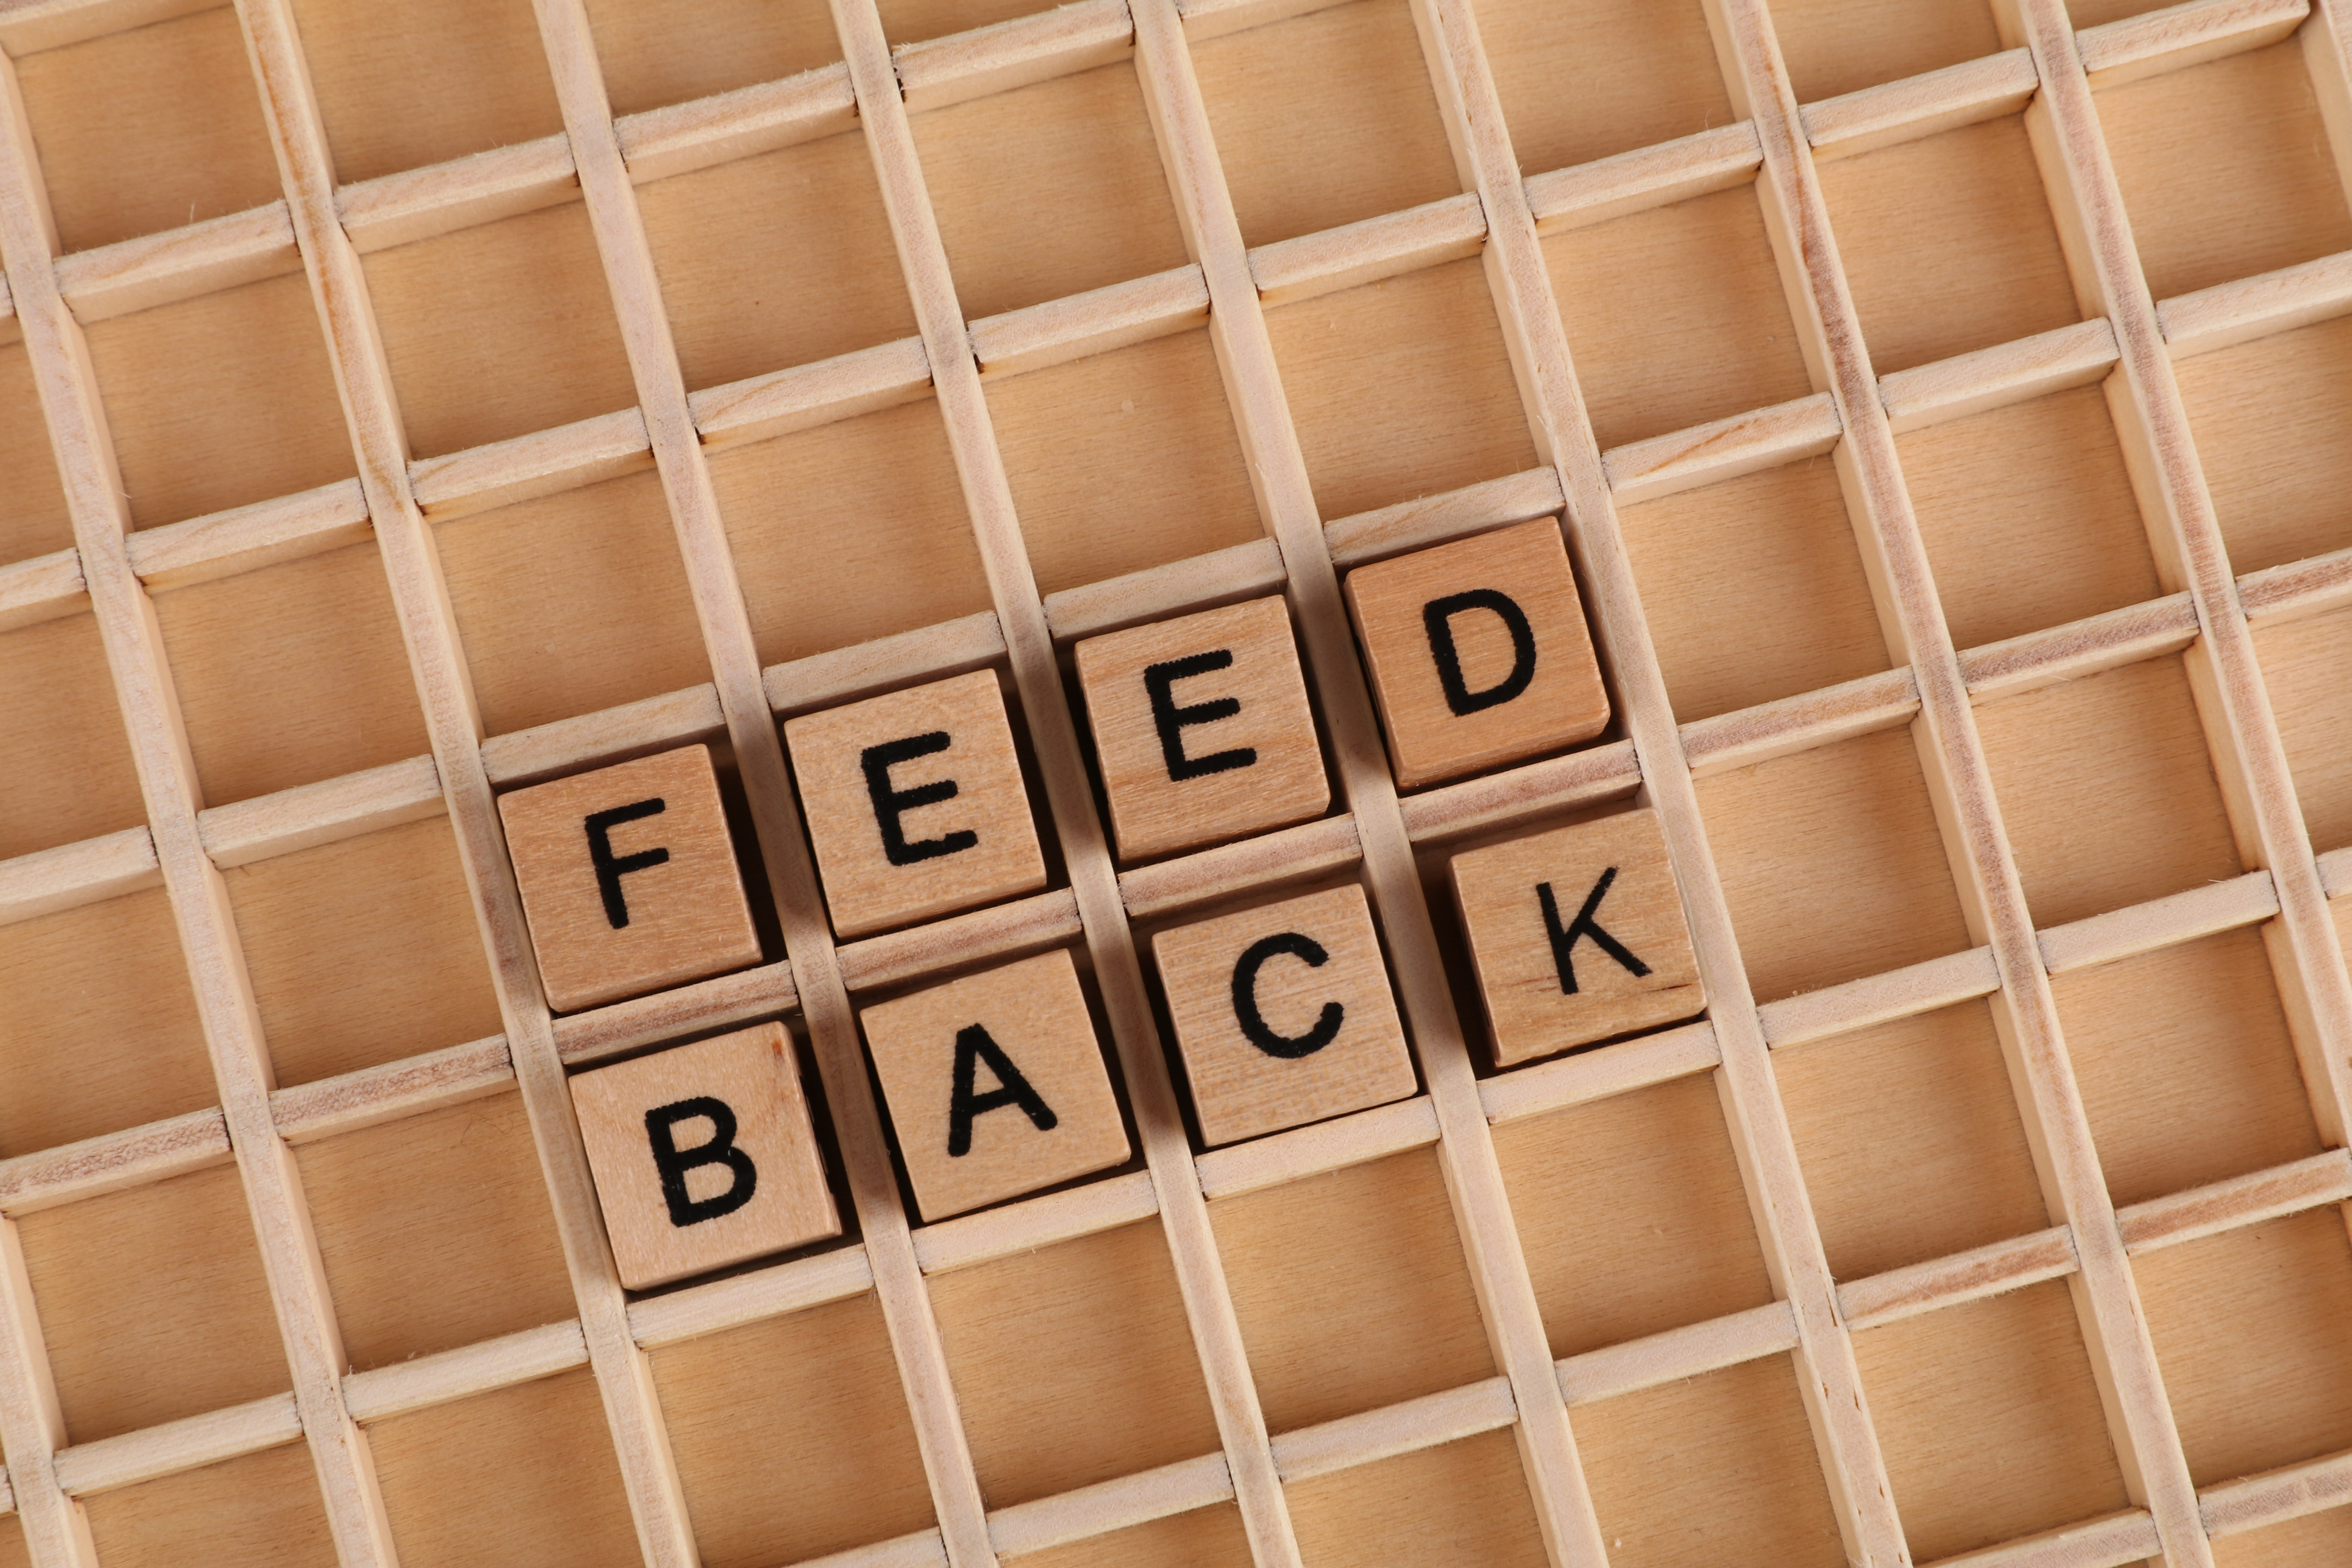 Why Is Feedback Important? The Top 5 Reasons Why Getting Positive Feedback Matters